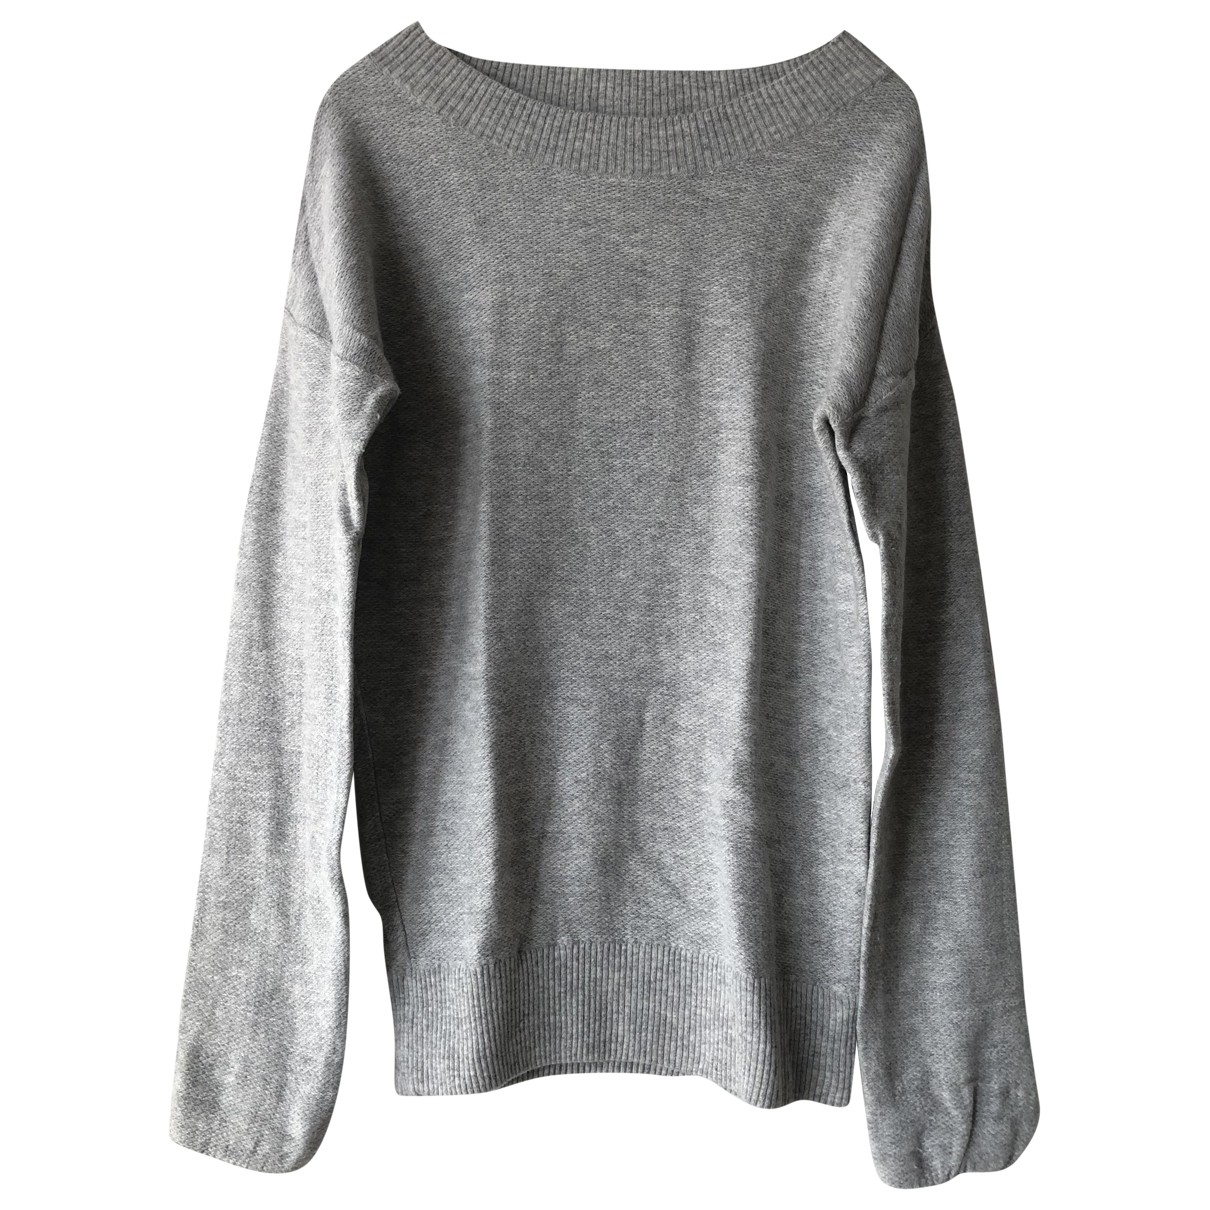 Massimo Dutti \N Grey Knitwear for Women XS International